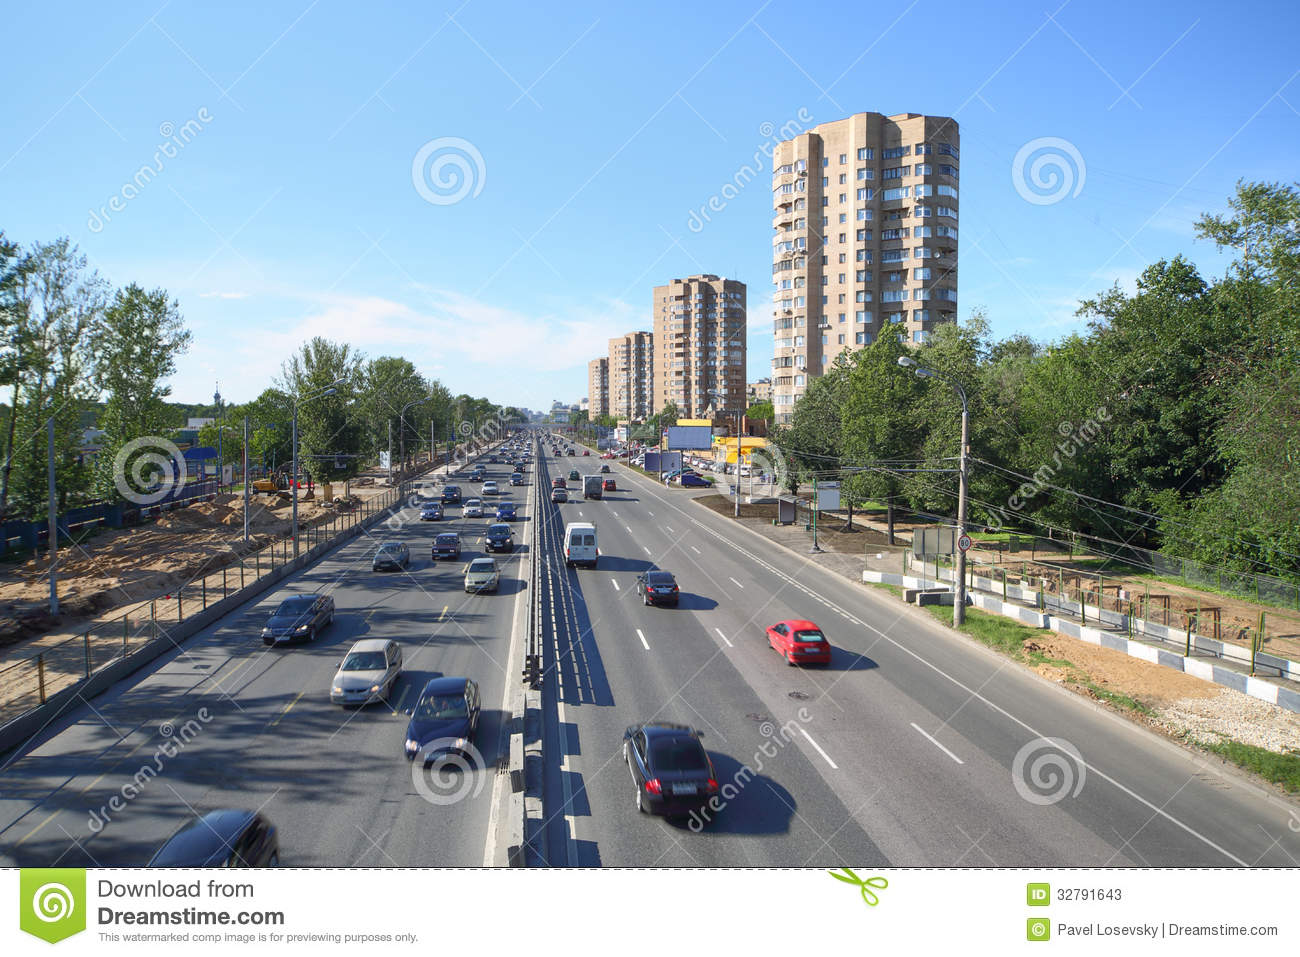 Many cars goes on wide road in large city